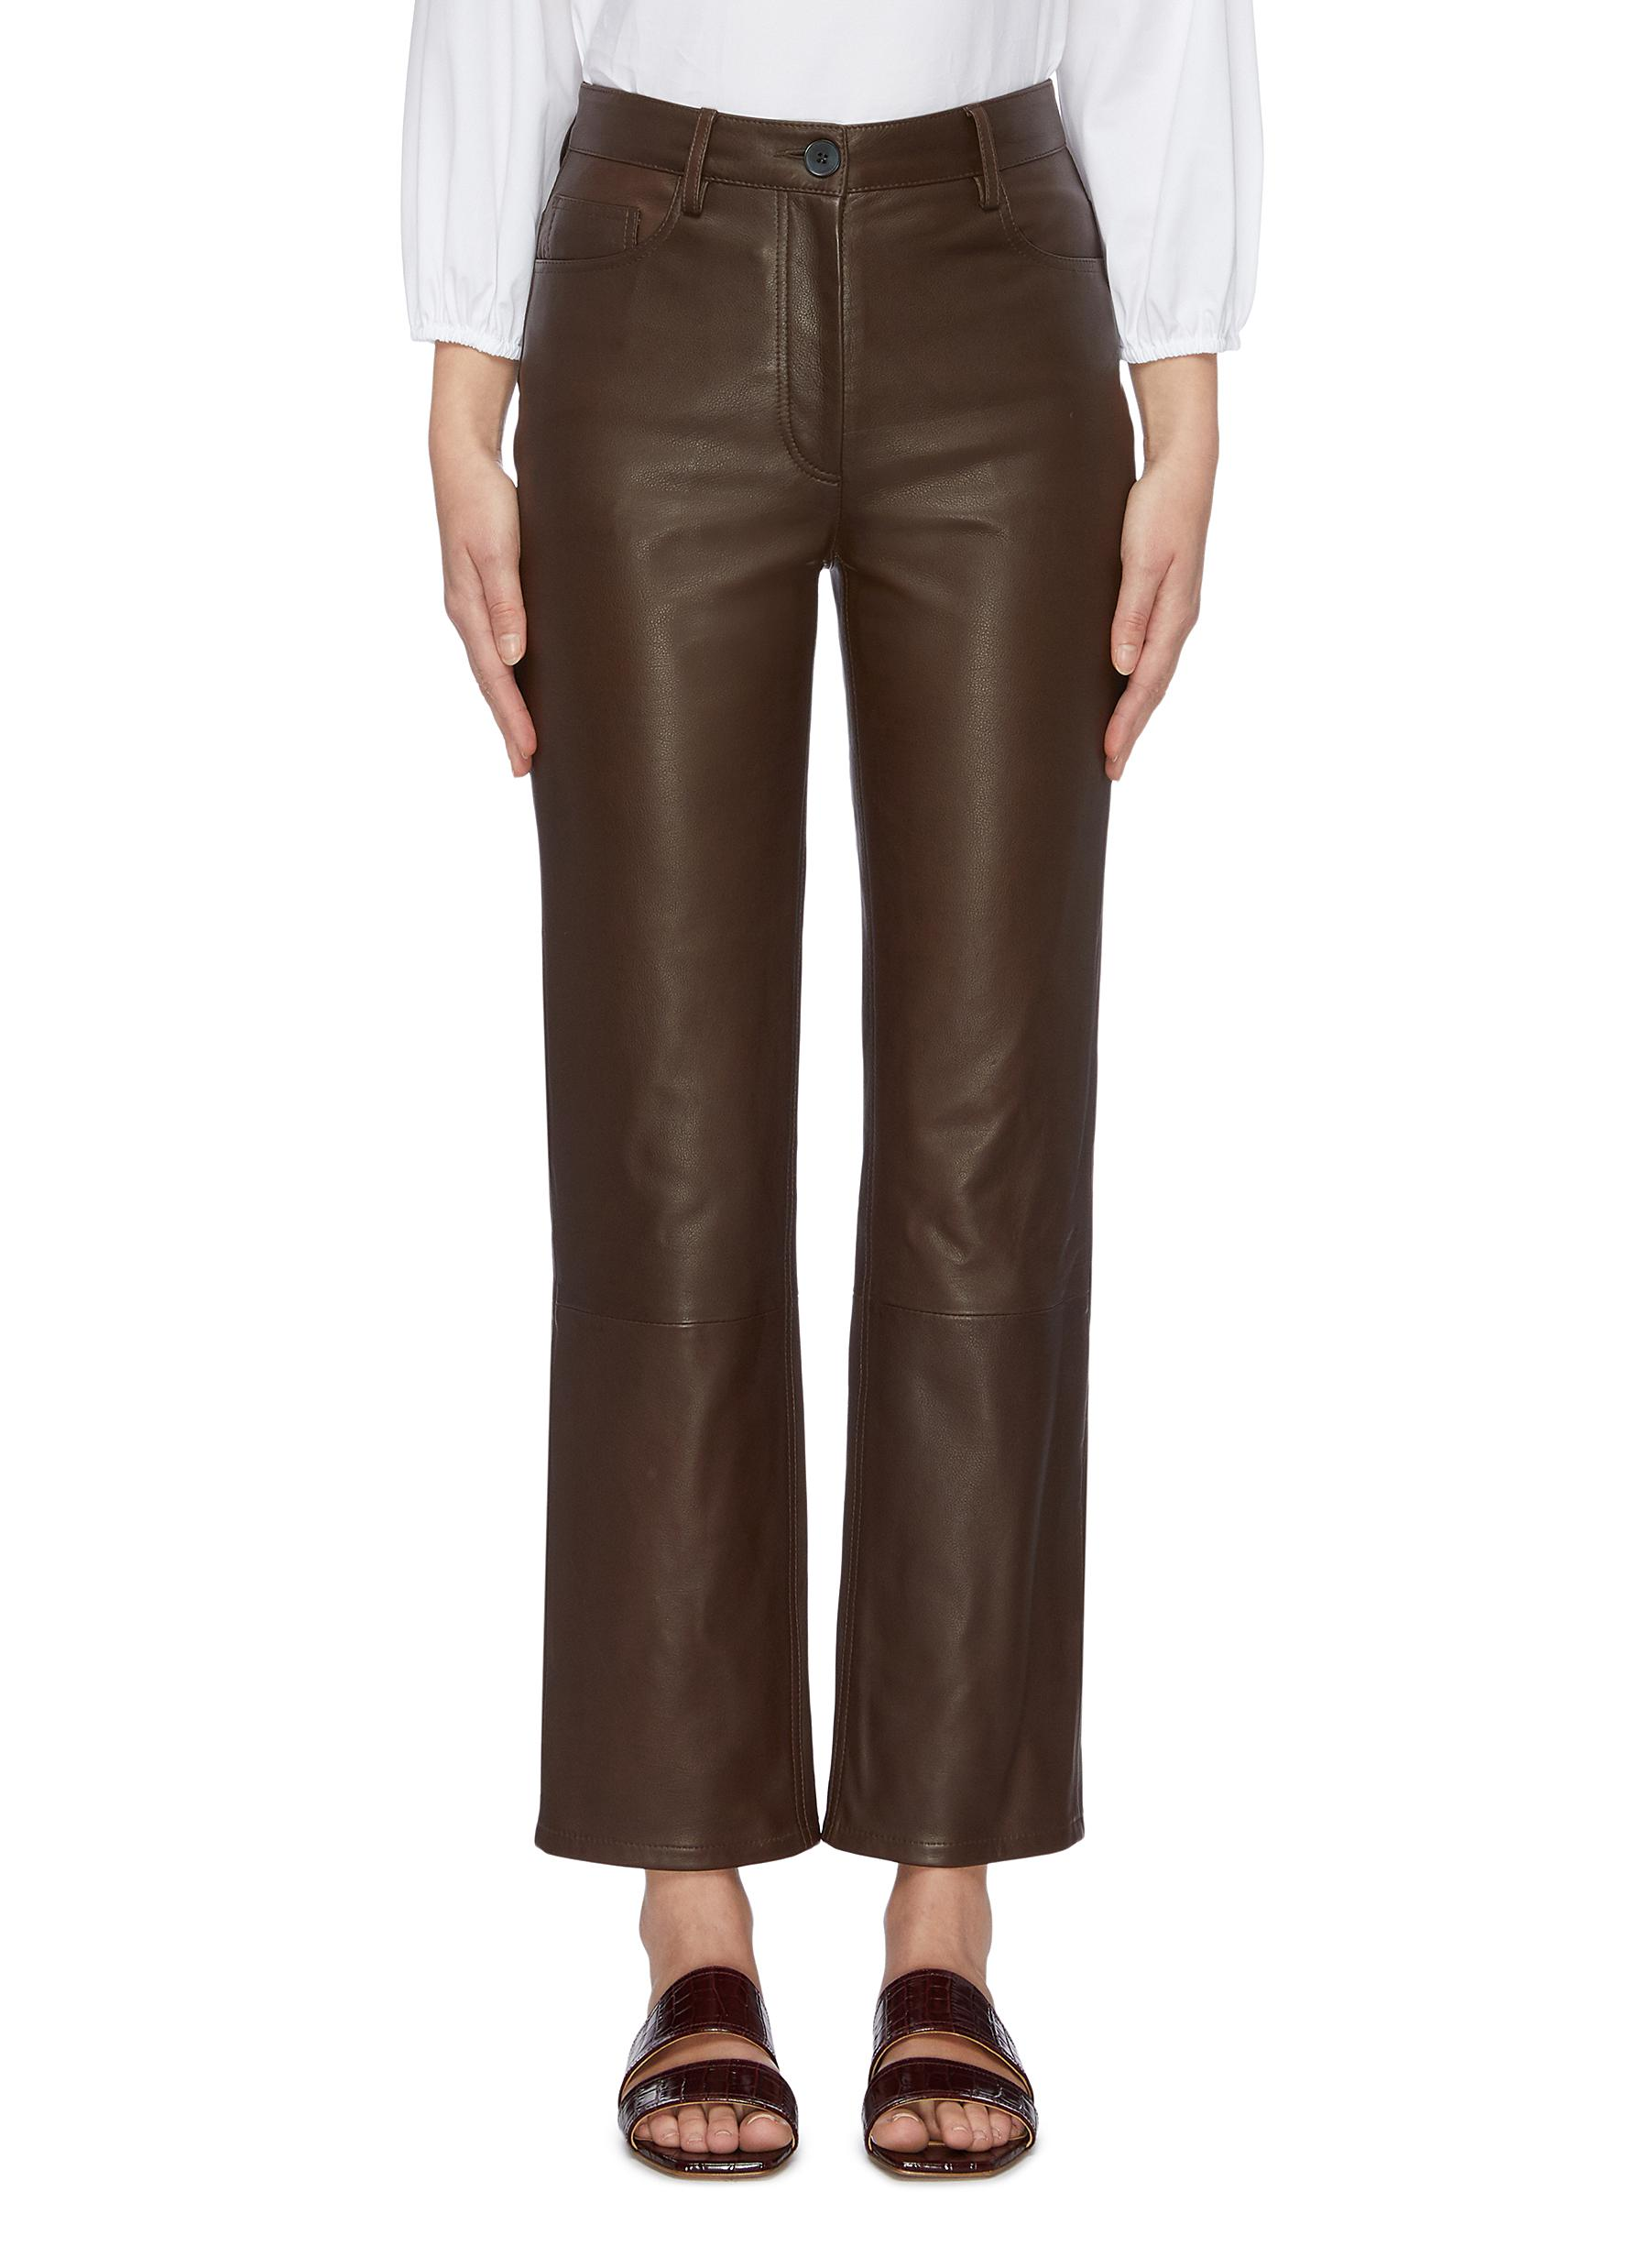 Charlee leather pants by The Row